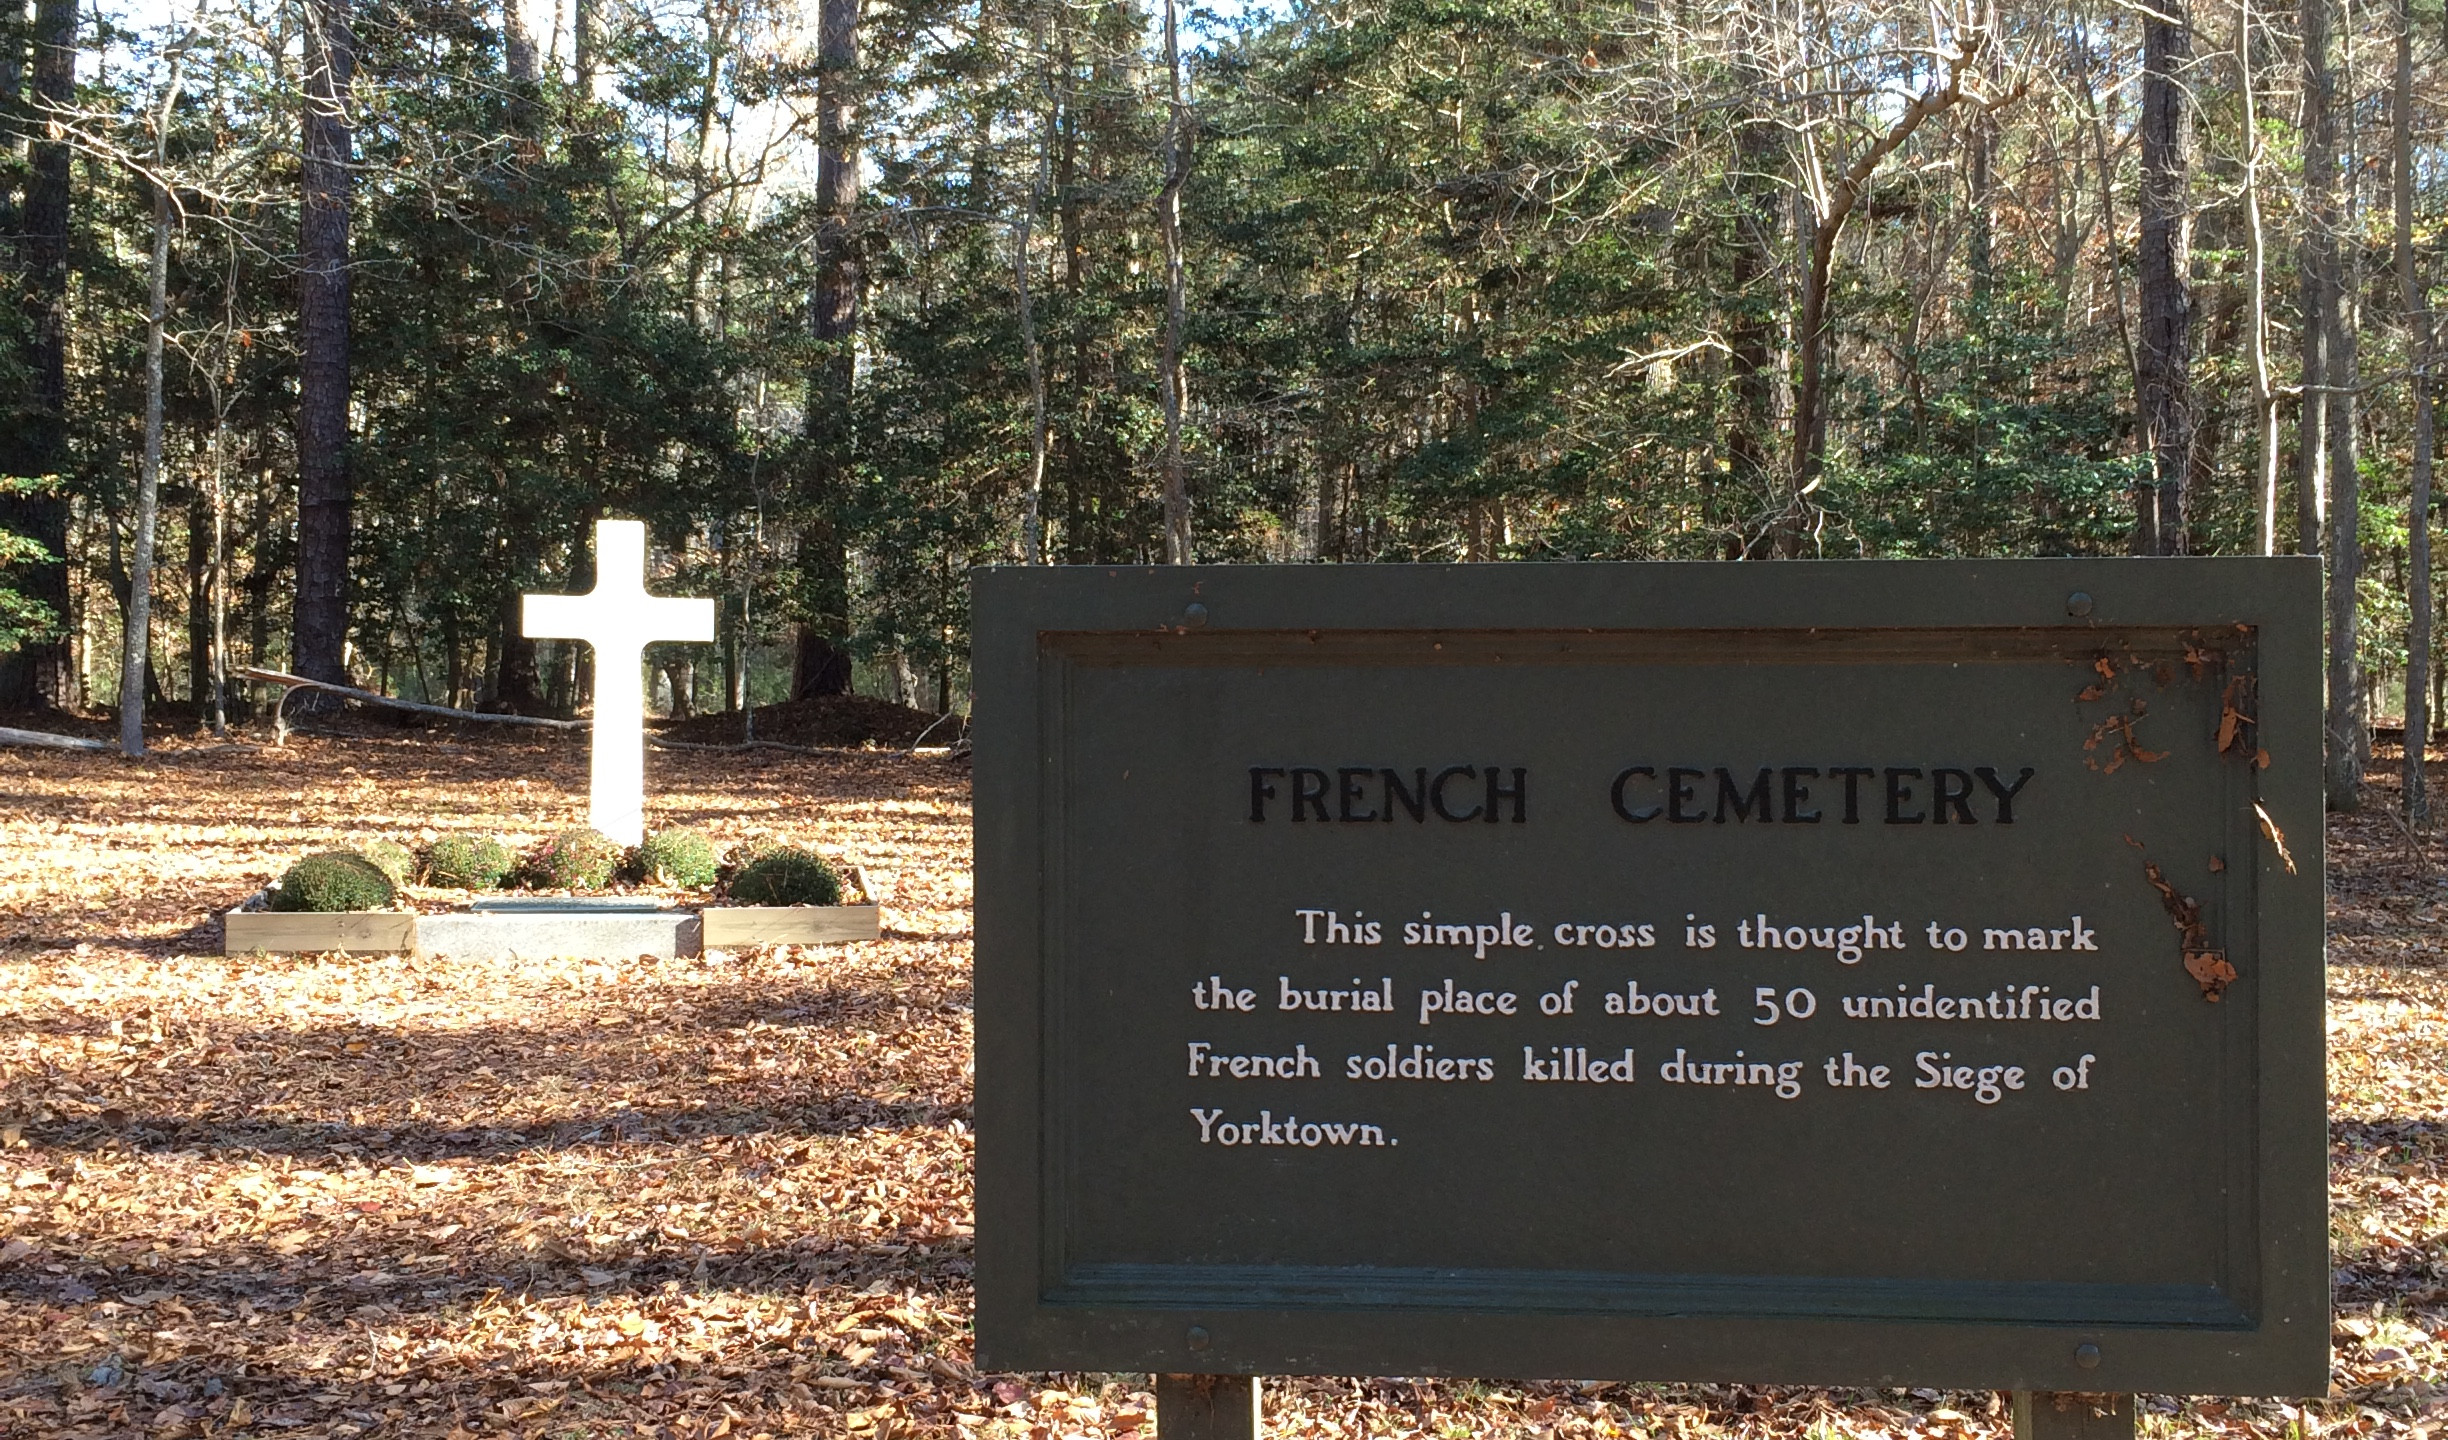 The French Cemetery